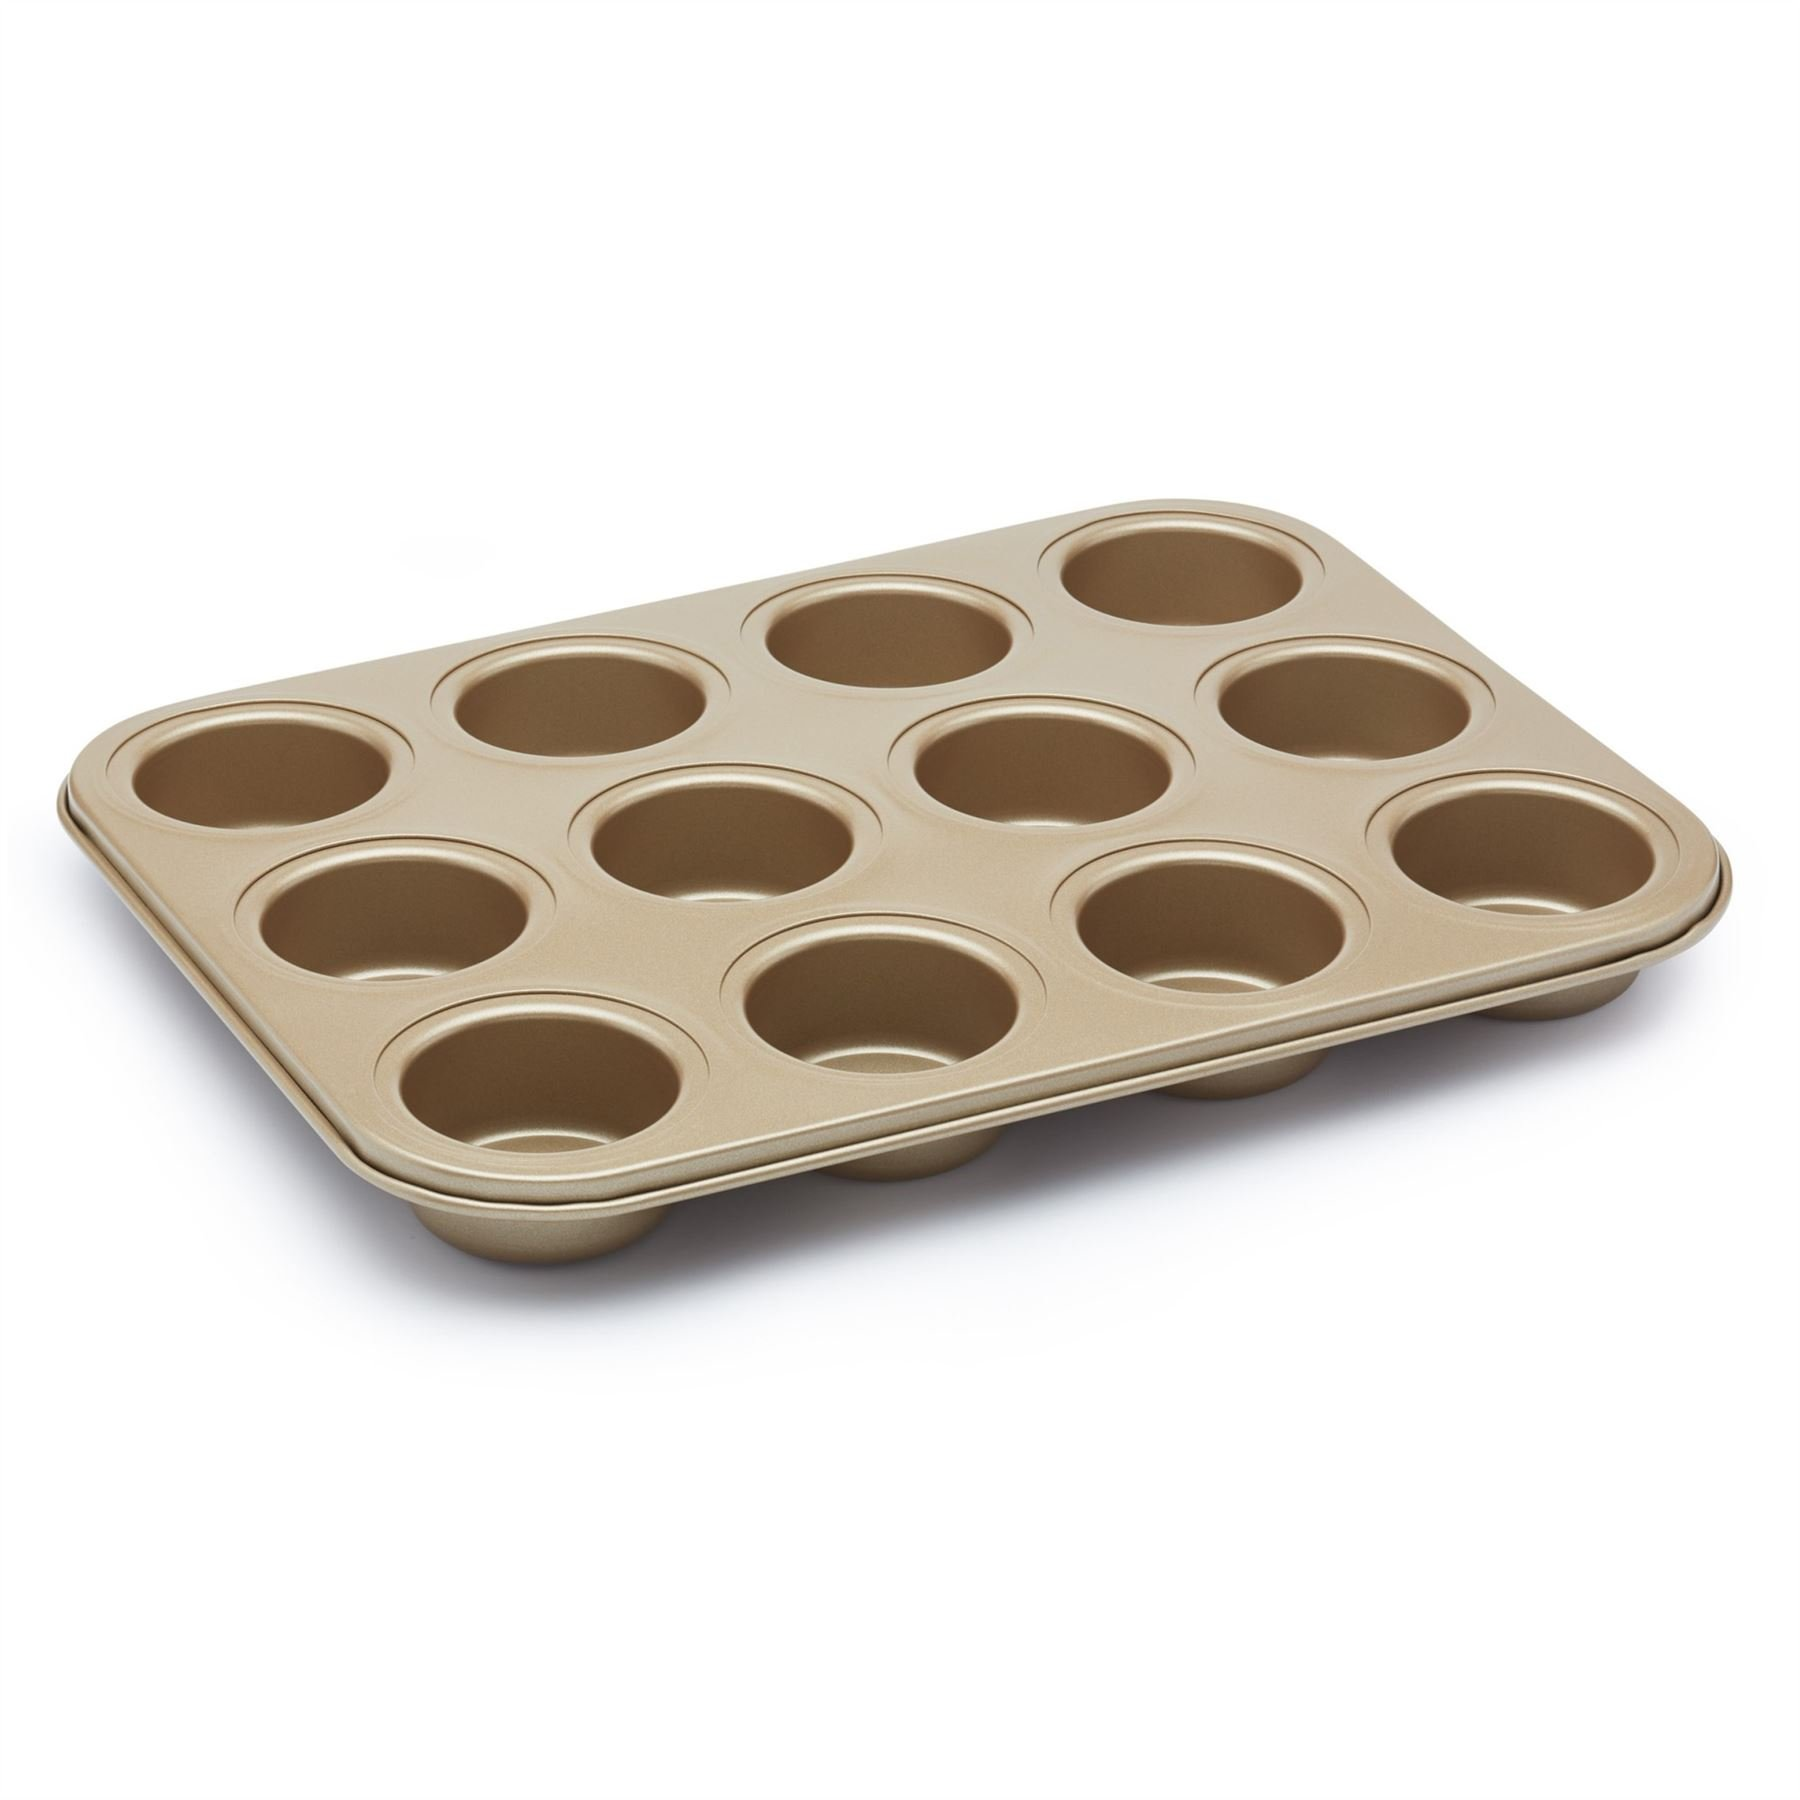 Paul Hollywood 12 Hole Deep Baking Pan, Non-stick by Kitchen Craft